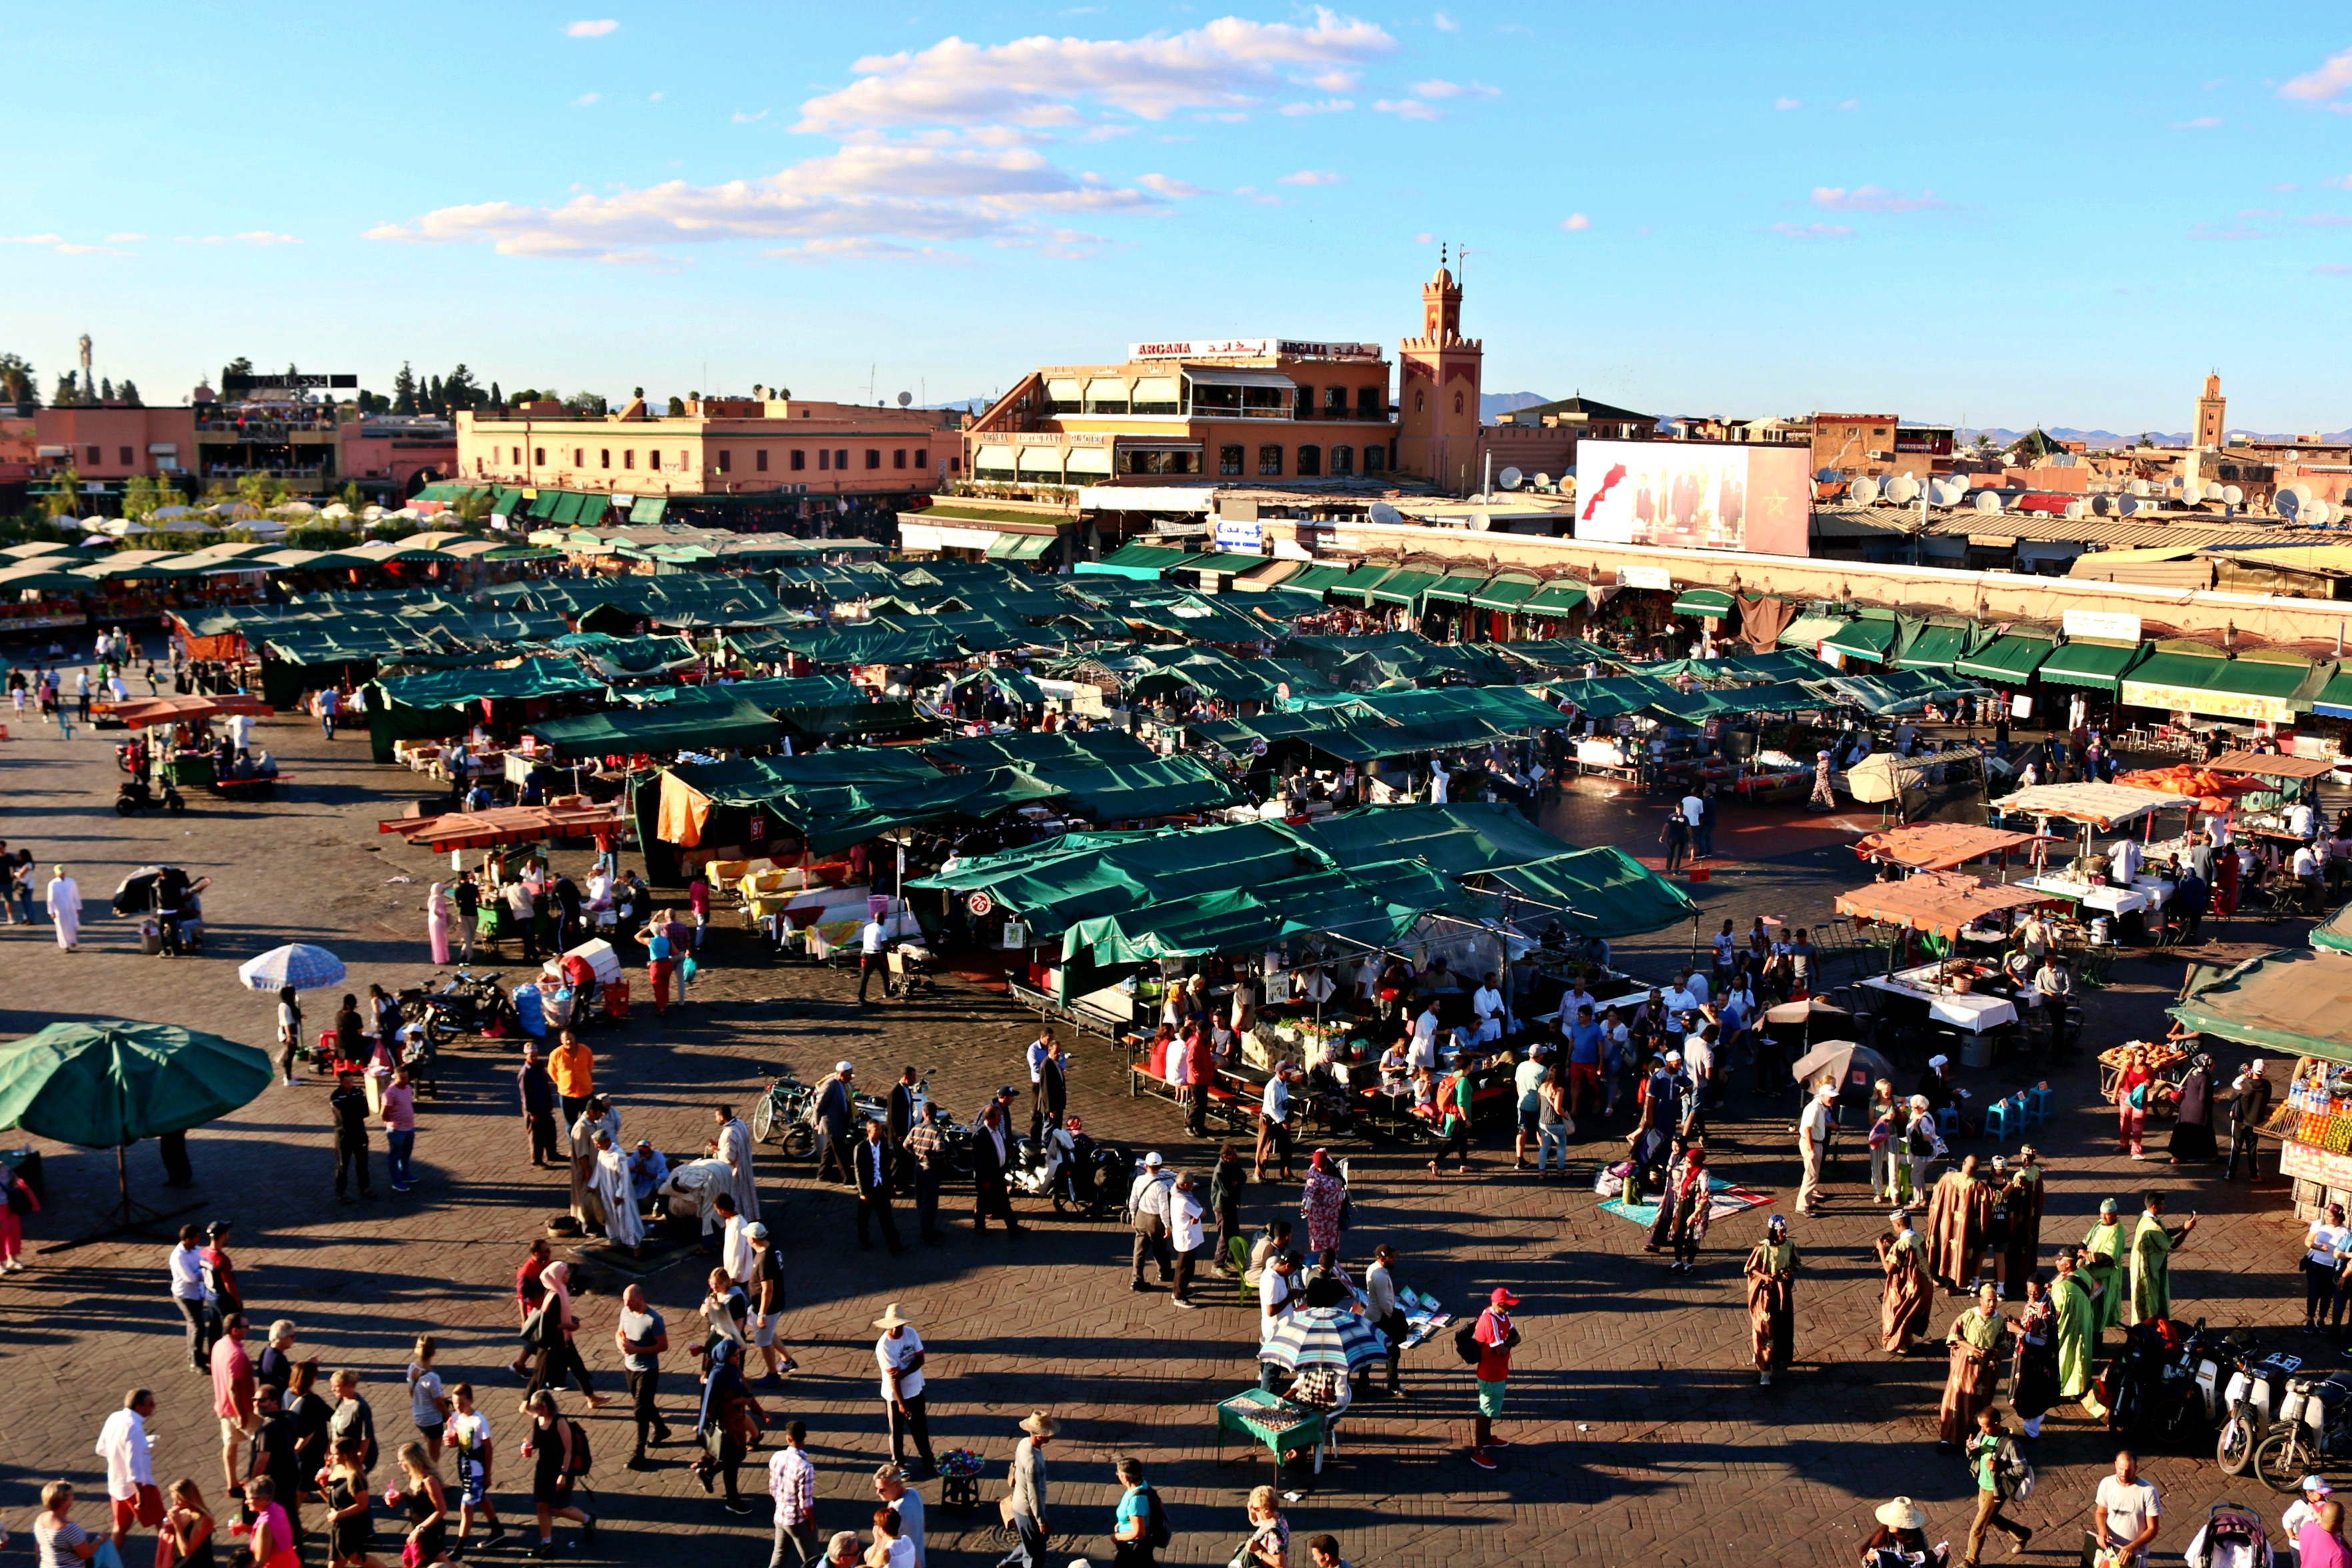 Place Jemaa el-fna is busy, day and night. Photo: Christine Hogg for PAX Global Media